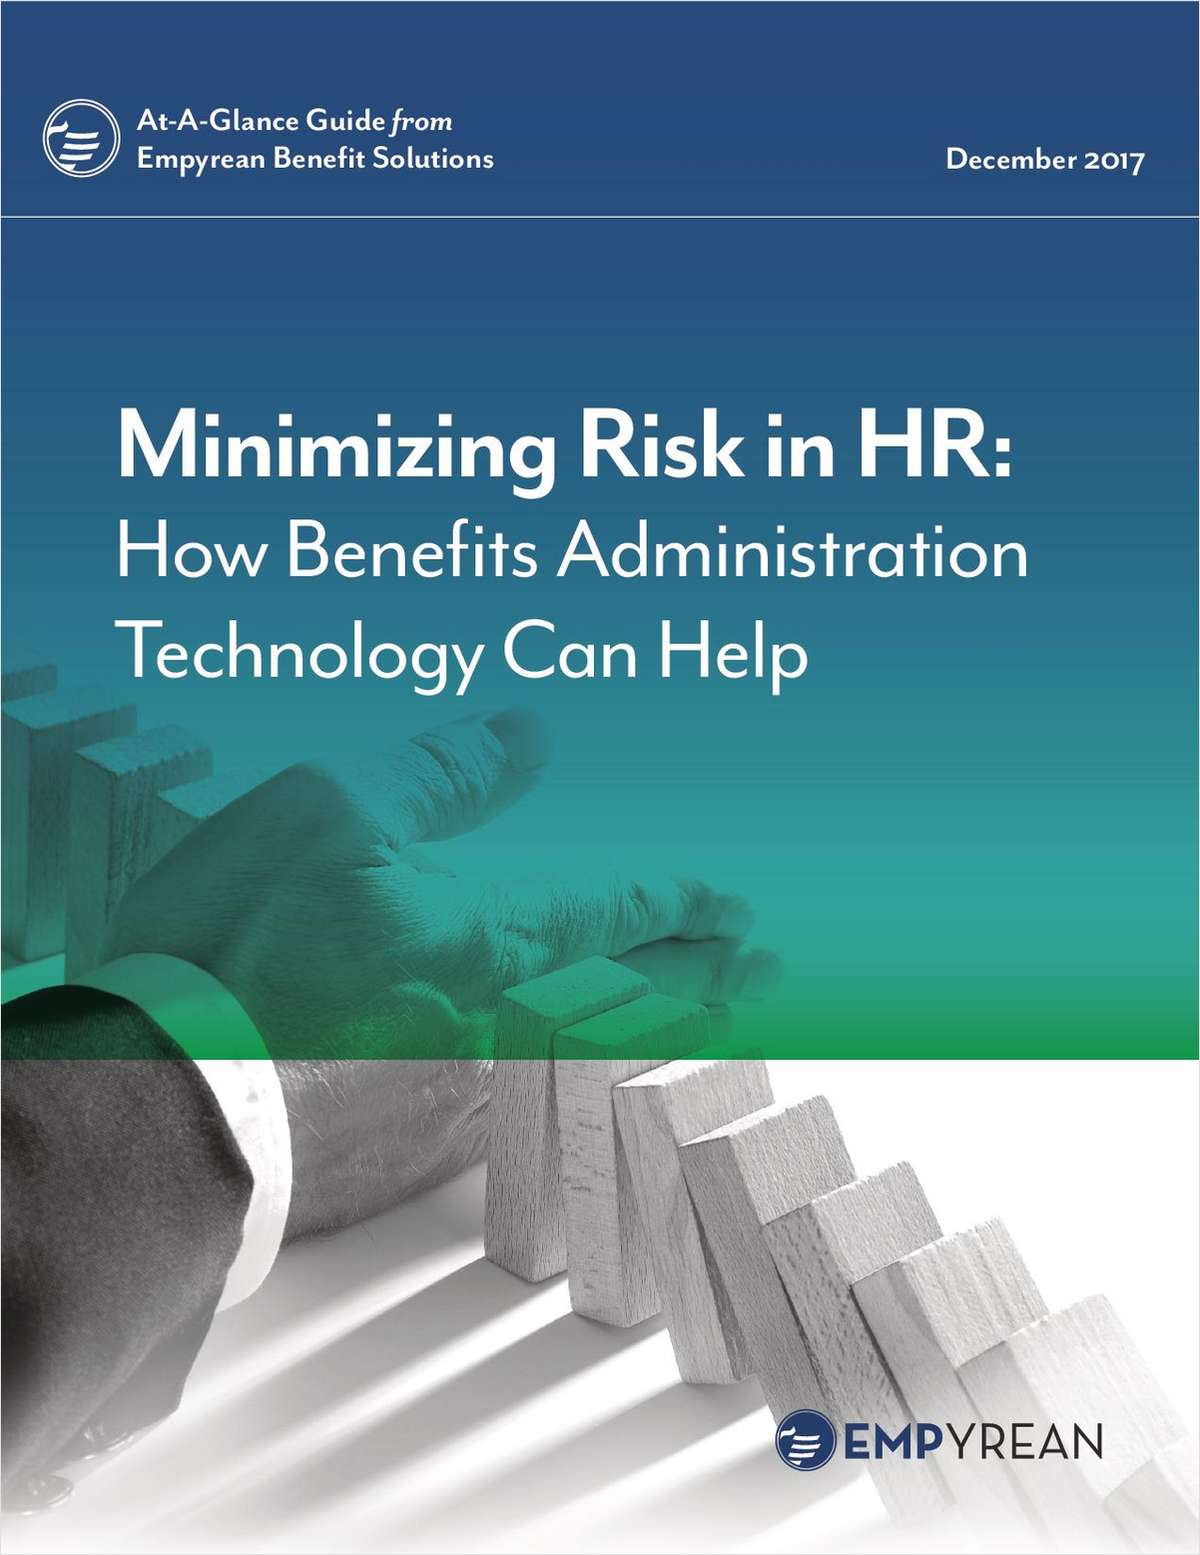 Minimizing Risk in HR: How Benefits Administration Technology Can Help